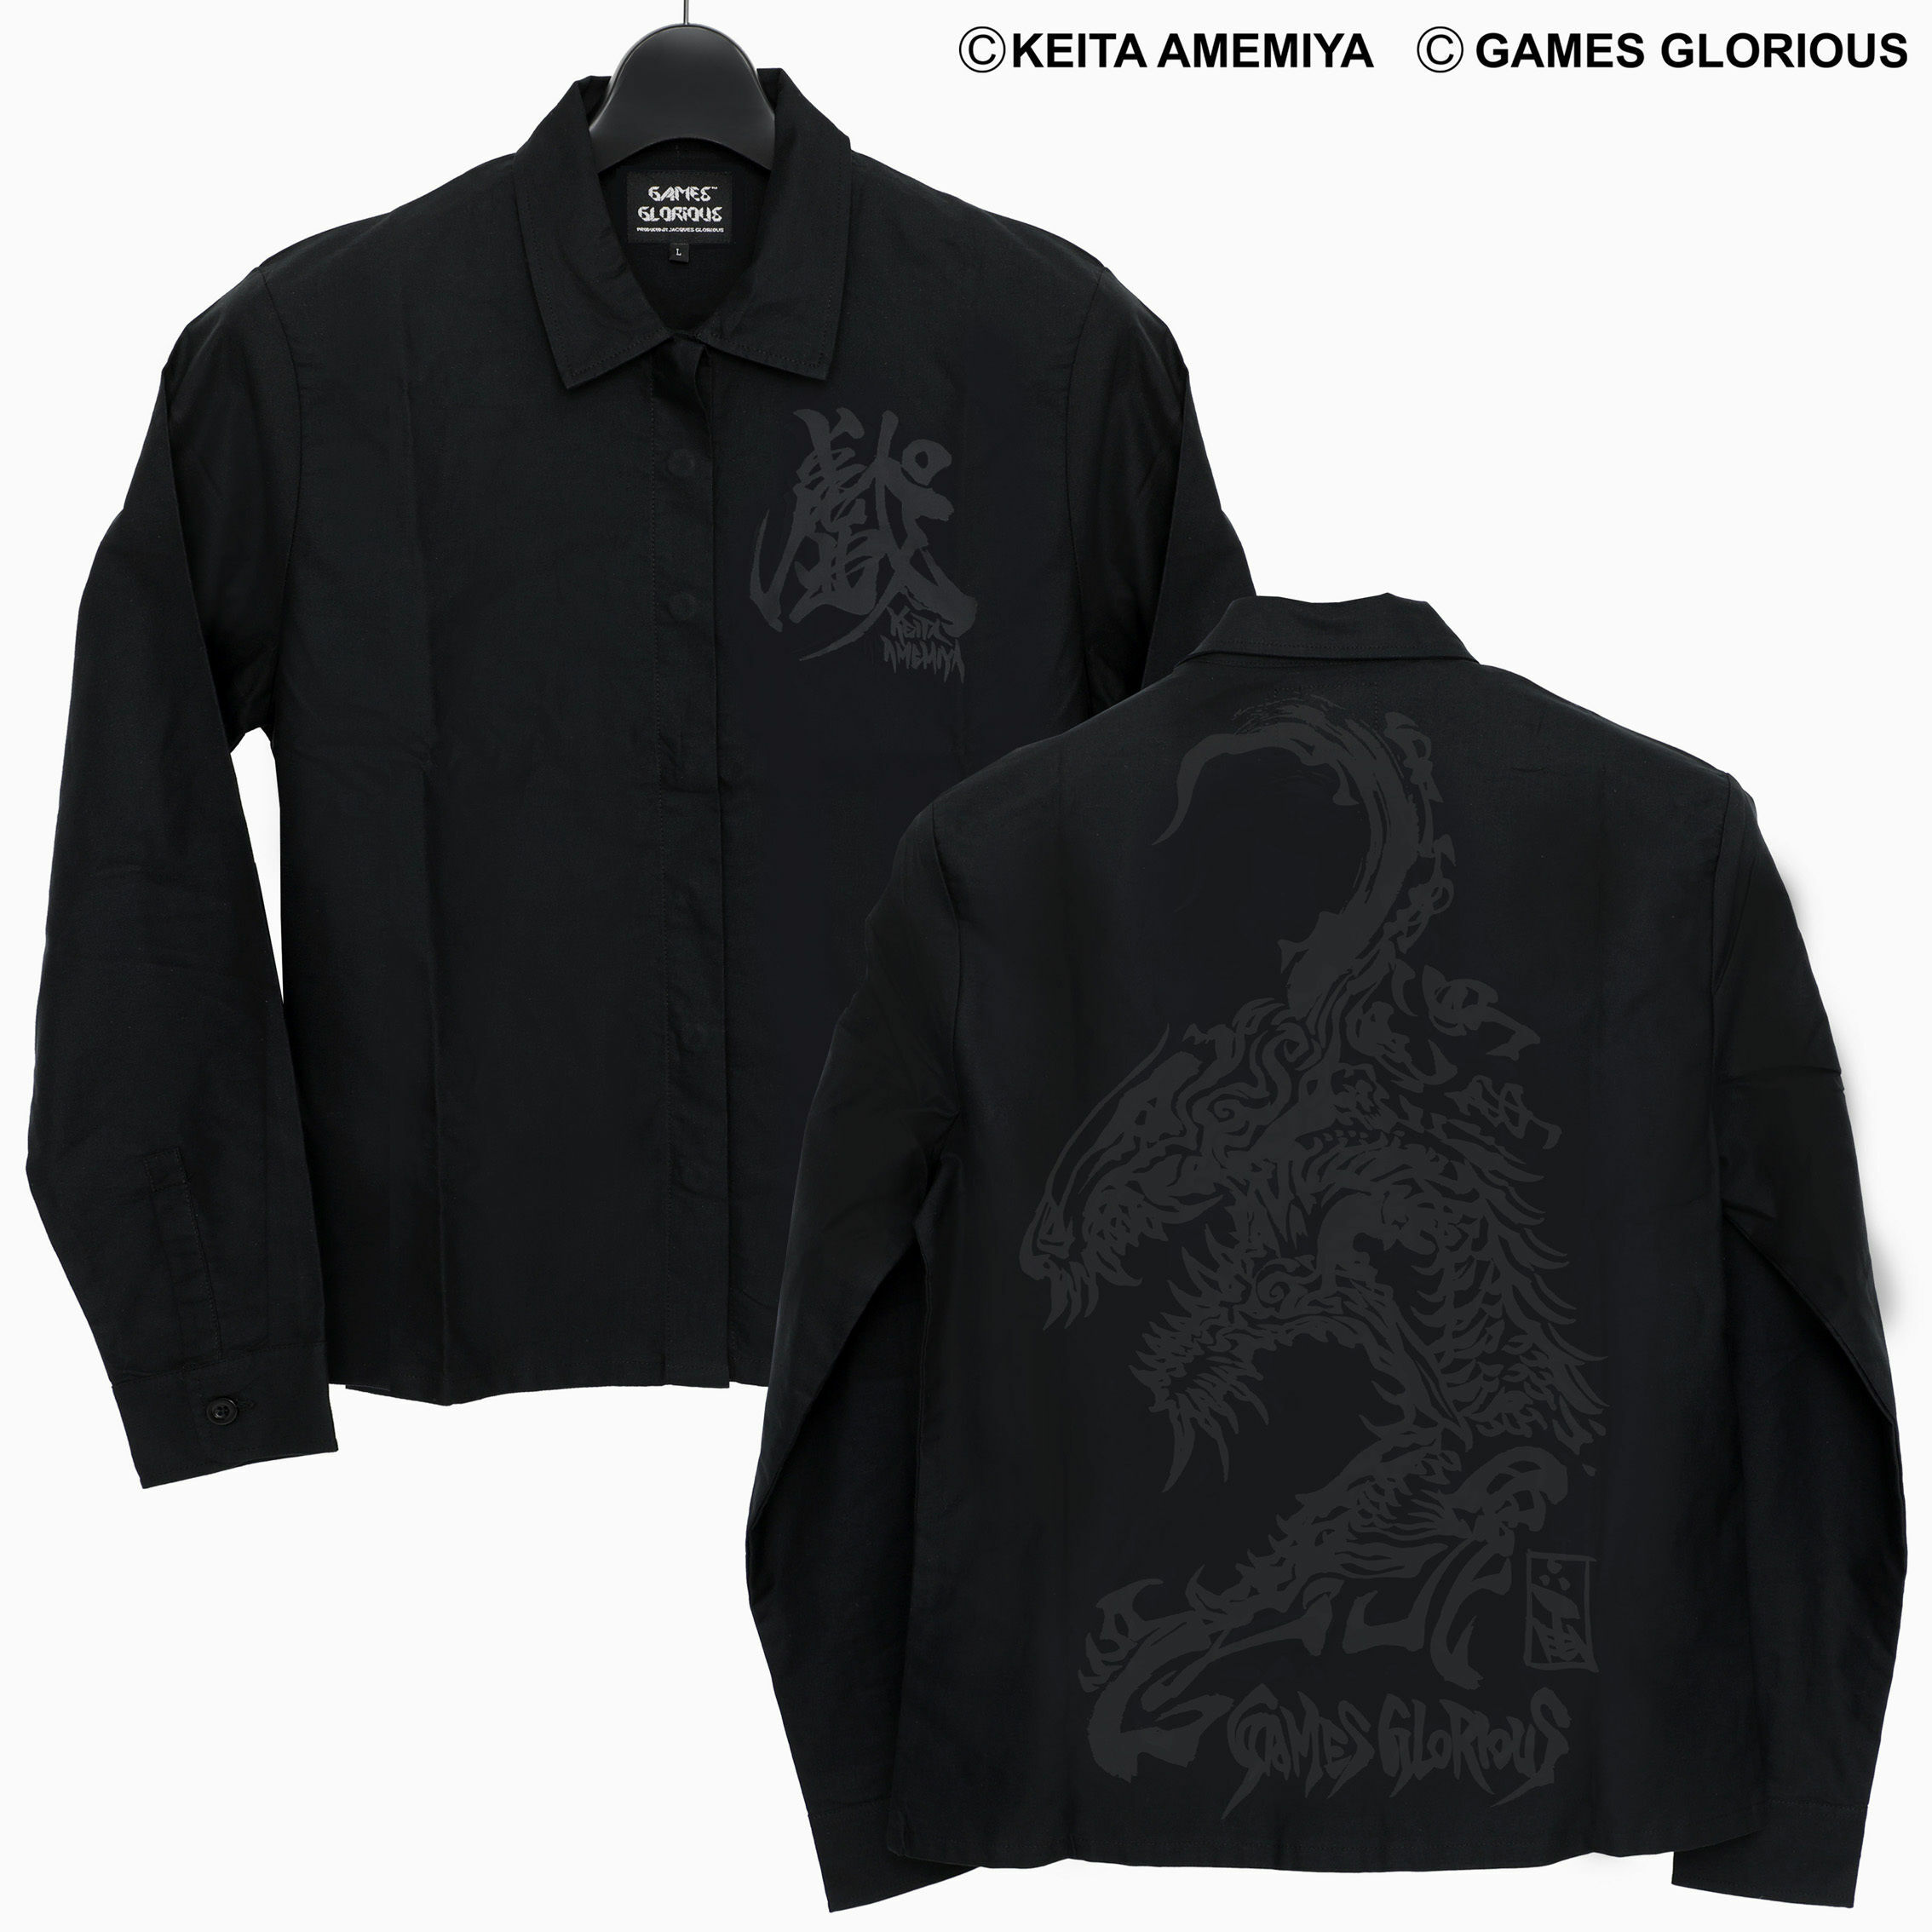 【 KEITA AMEMIYA x GAMES GLORIOUS 】K.A. Collar Shirt 〜 MARYUU 〜 / GAMES GLORIOUS